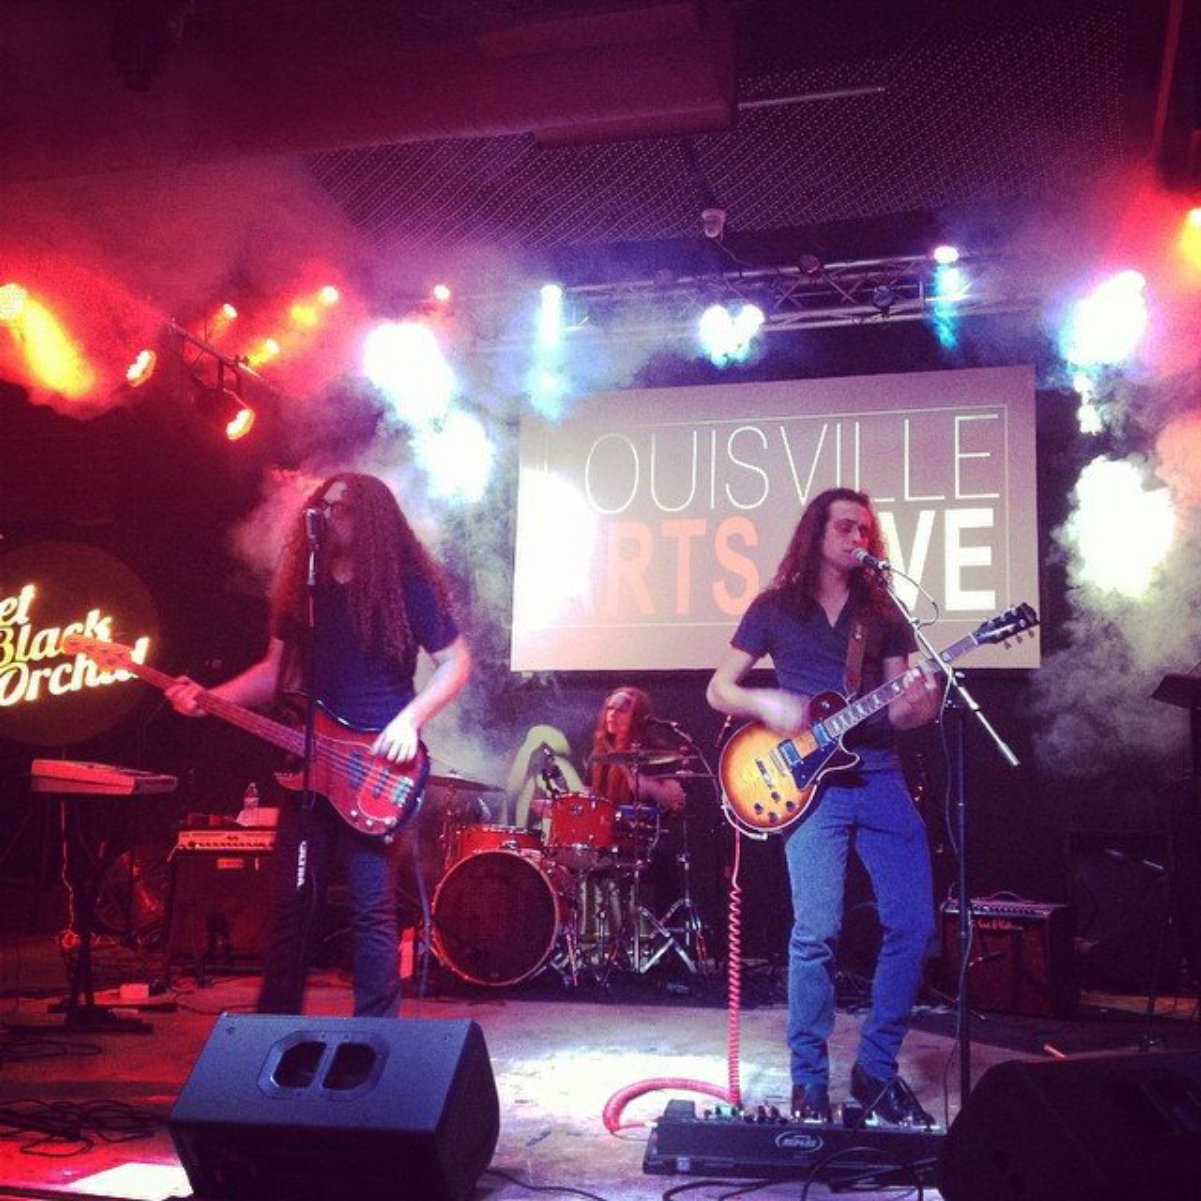 Jet Black Orchid live in late-2014